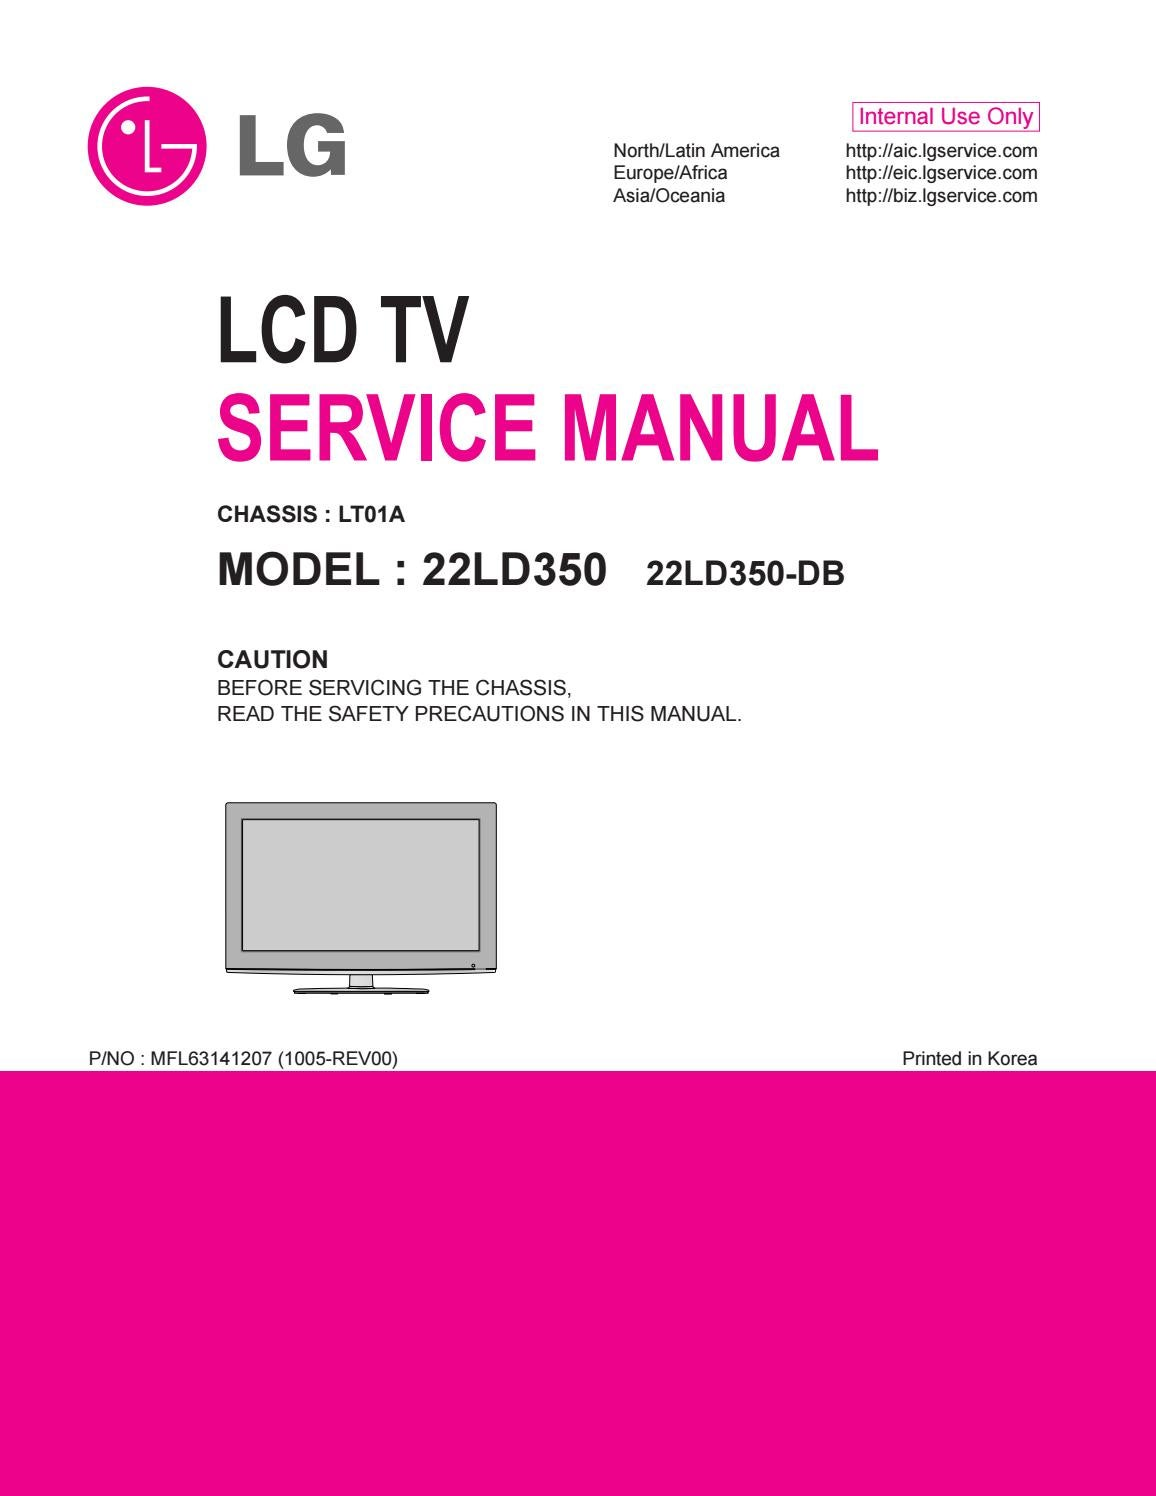 manual de servi o tv lg 22ld350 db chassis lt01a by portal. Black Bedroom Furniture Sets. Home Design Ideas